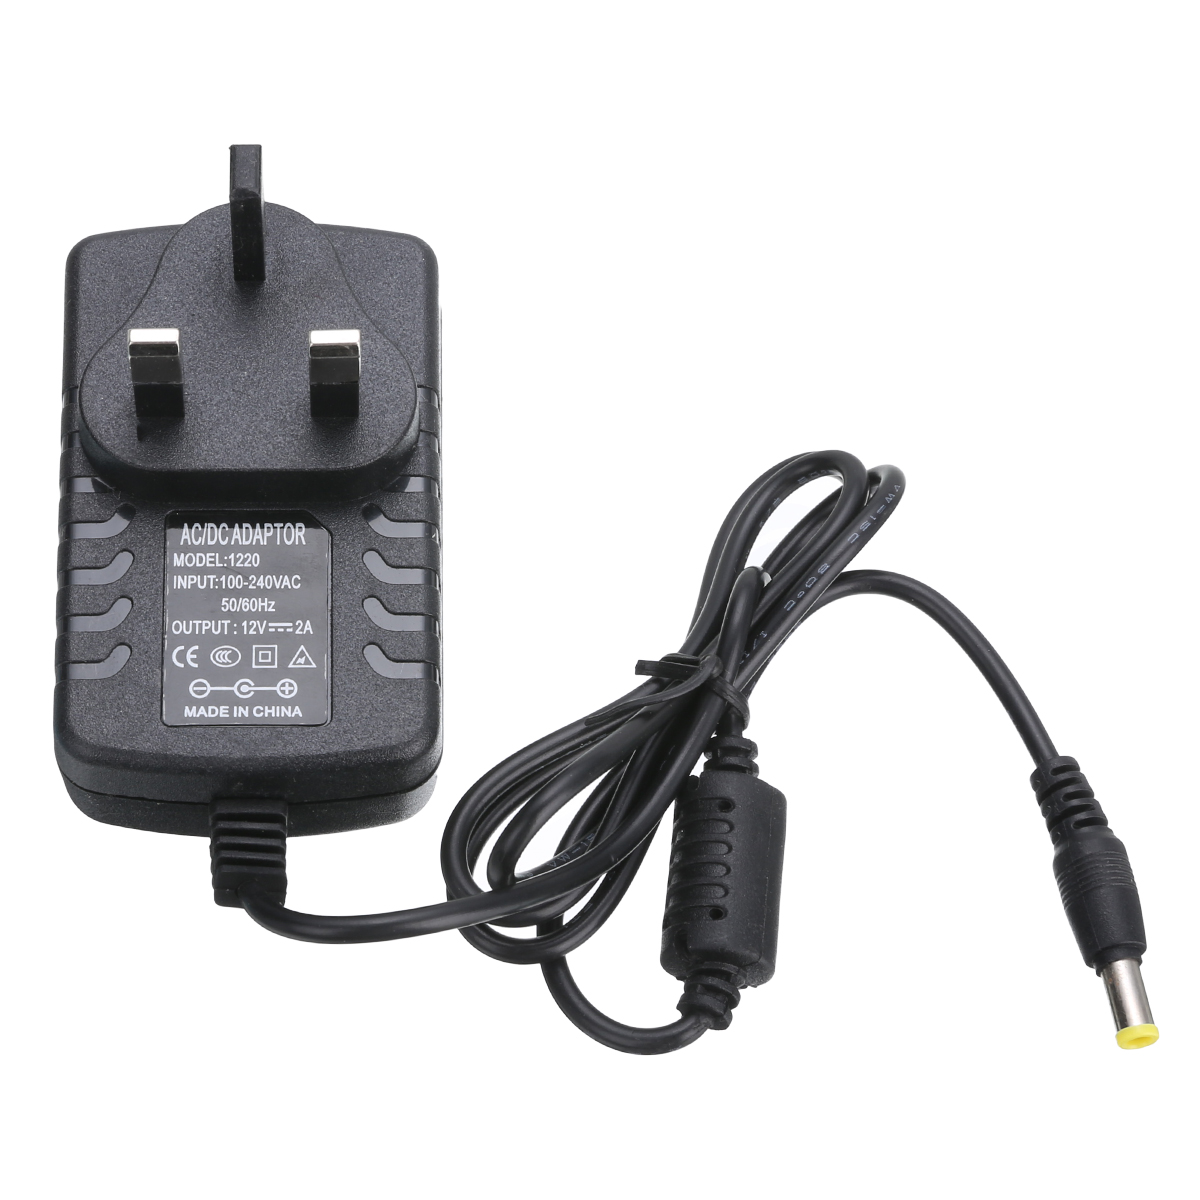 12V 2A UK Plug Power Supply Black Power Adapter Charger 100cm Cable For Makita BMR 100/101 Site Radio 8x5x6.5cm(China)